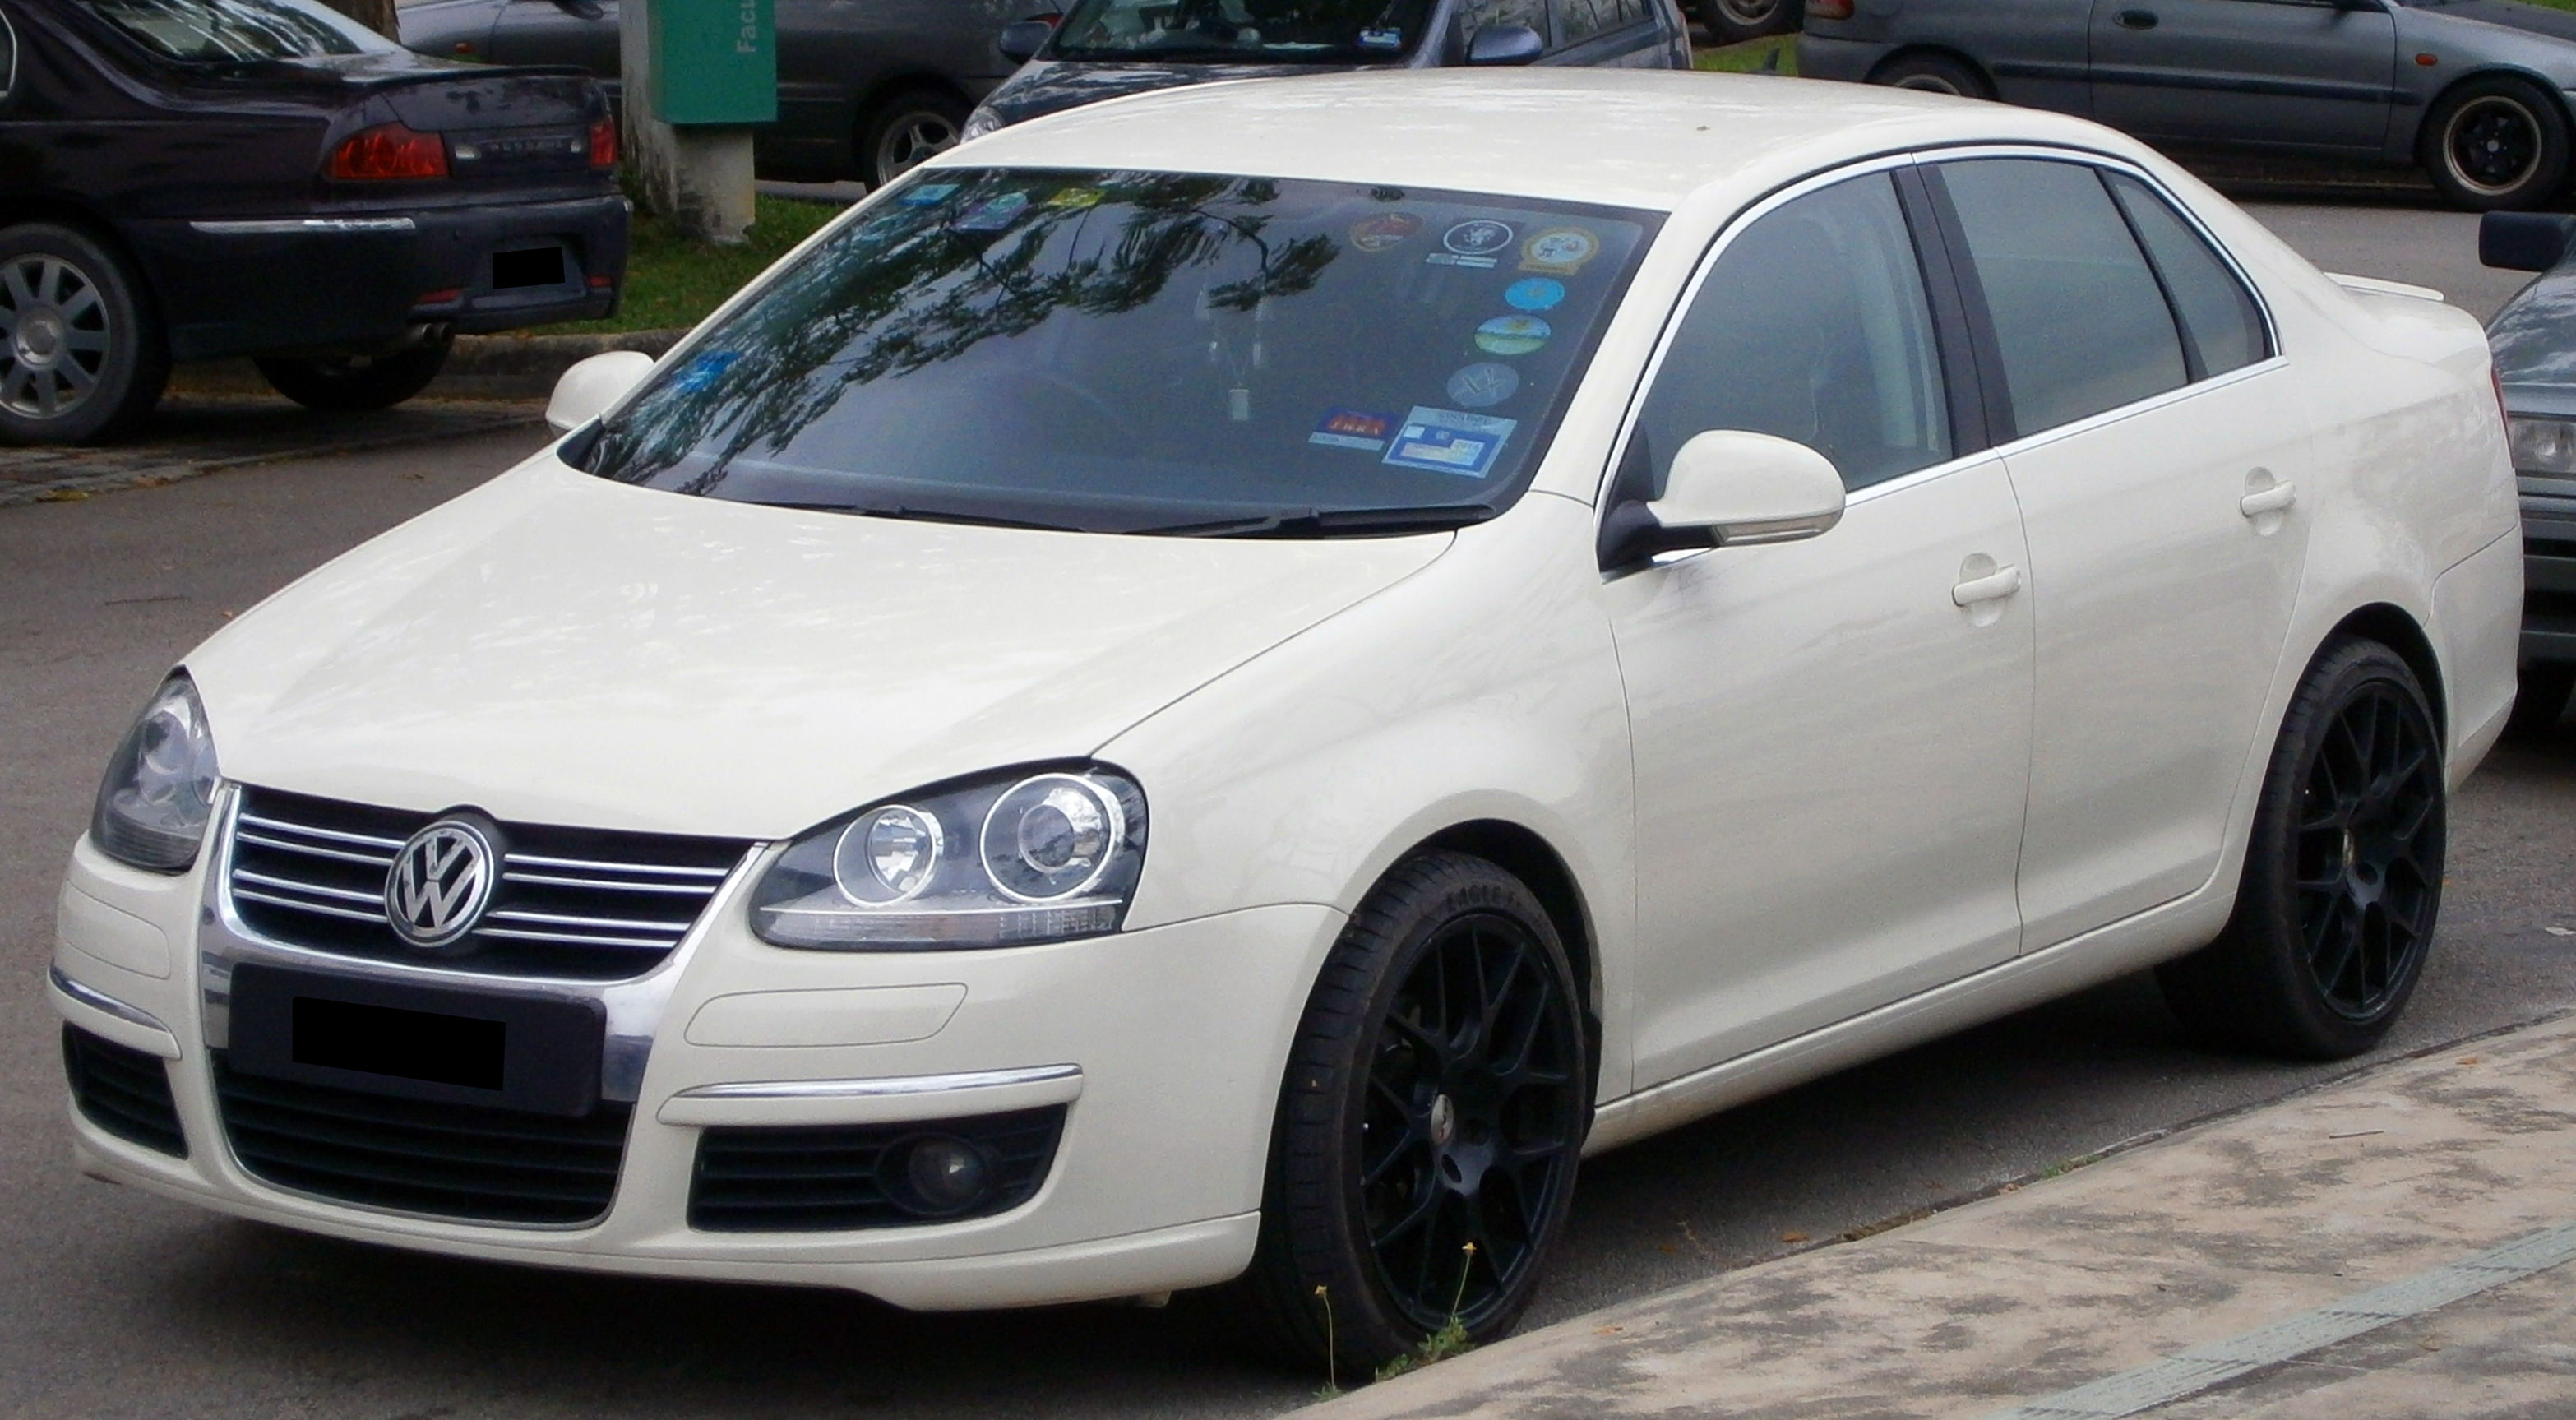 2008 volkswagen jetta iv pictures information and specs auto. Black Bedroom Furniture Sets. Home Design Ideas